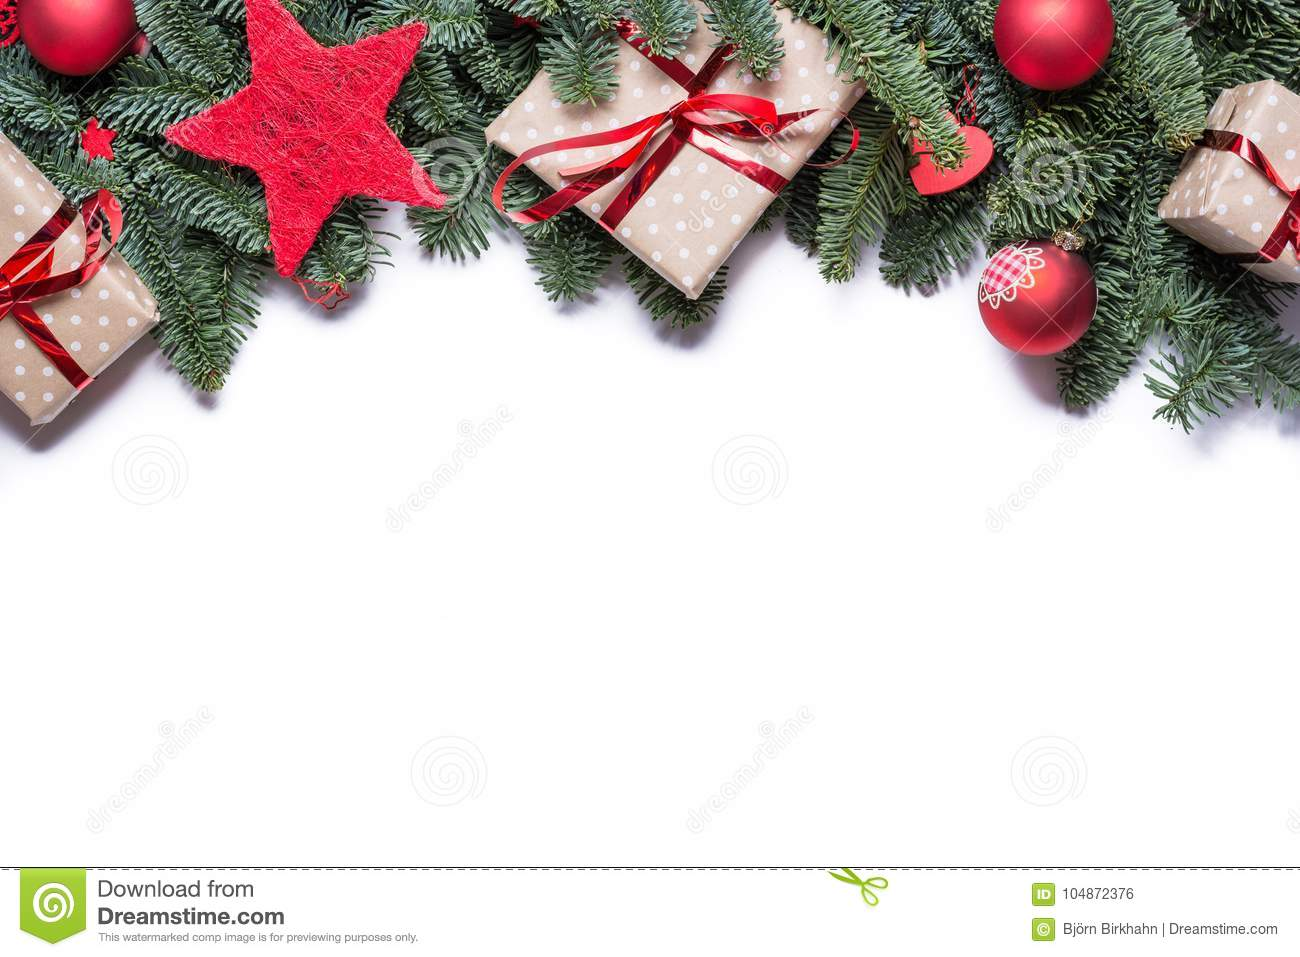 Christmas background border at the top with fir branches and other decorations presents red stars and bulbs with copy space on